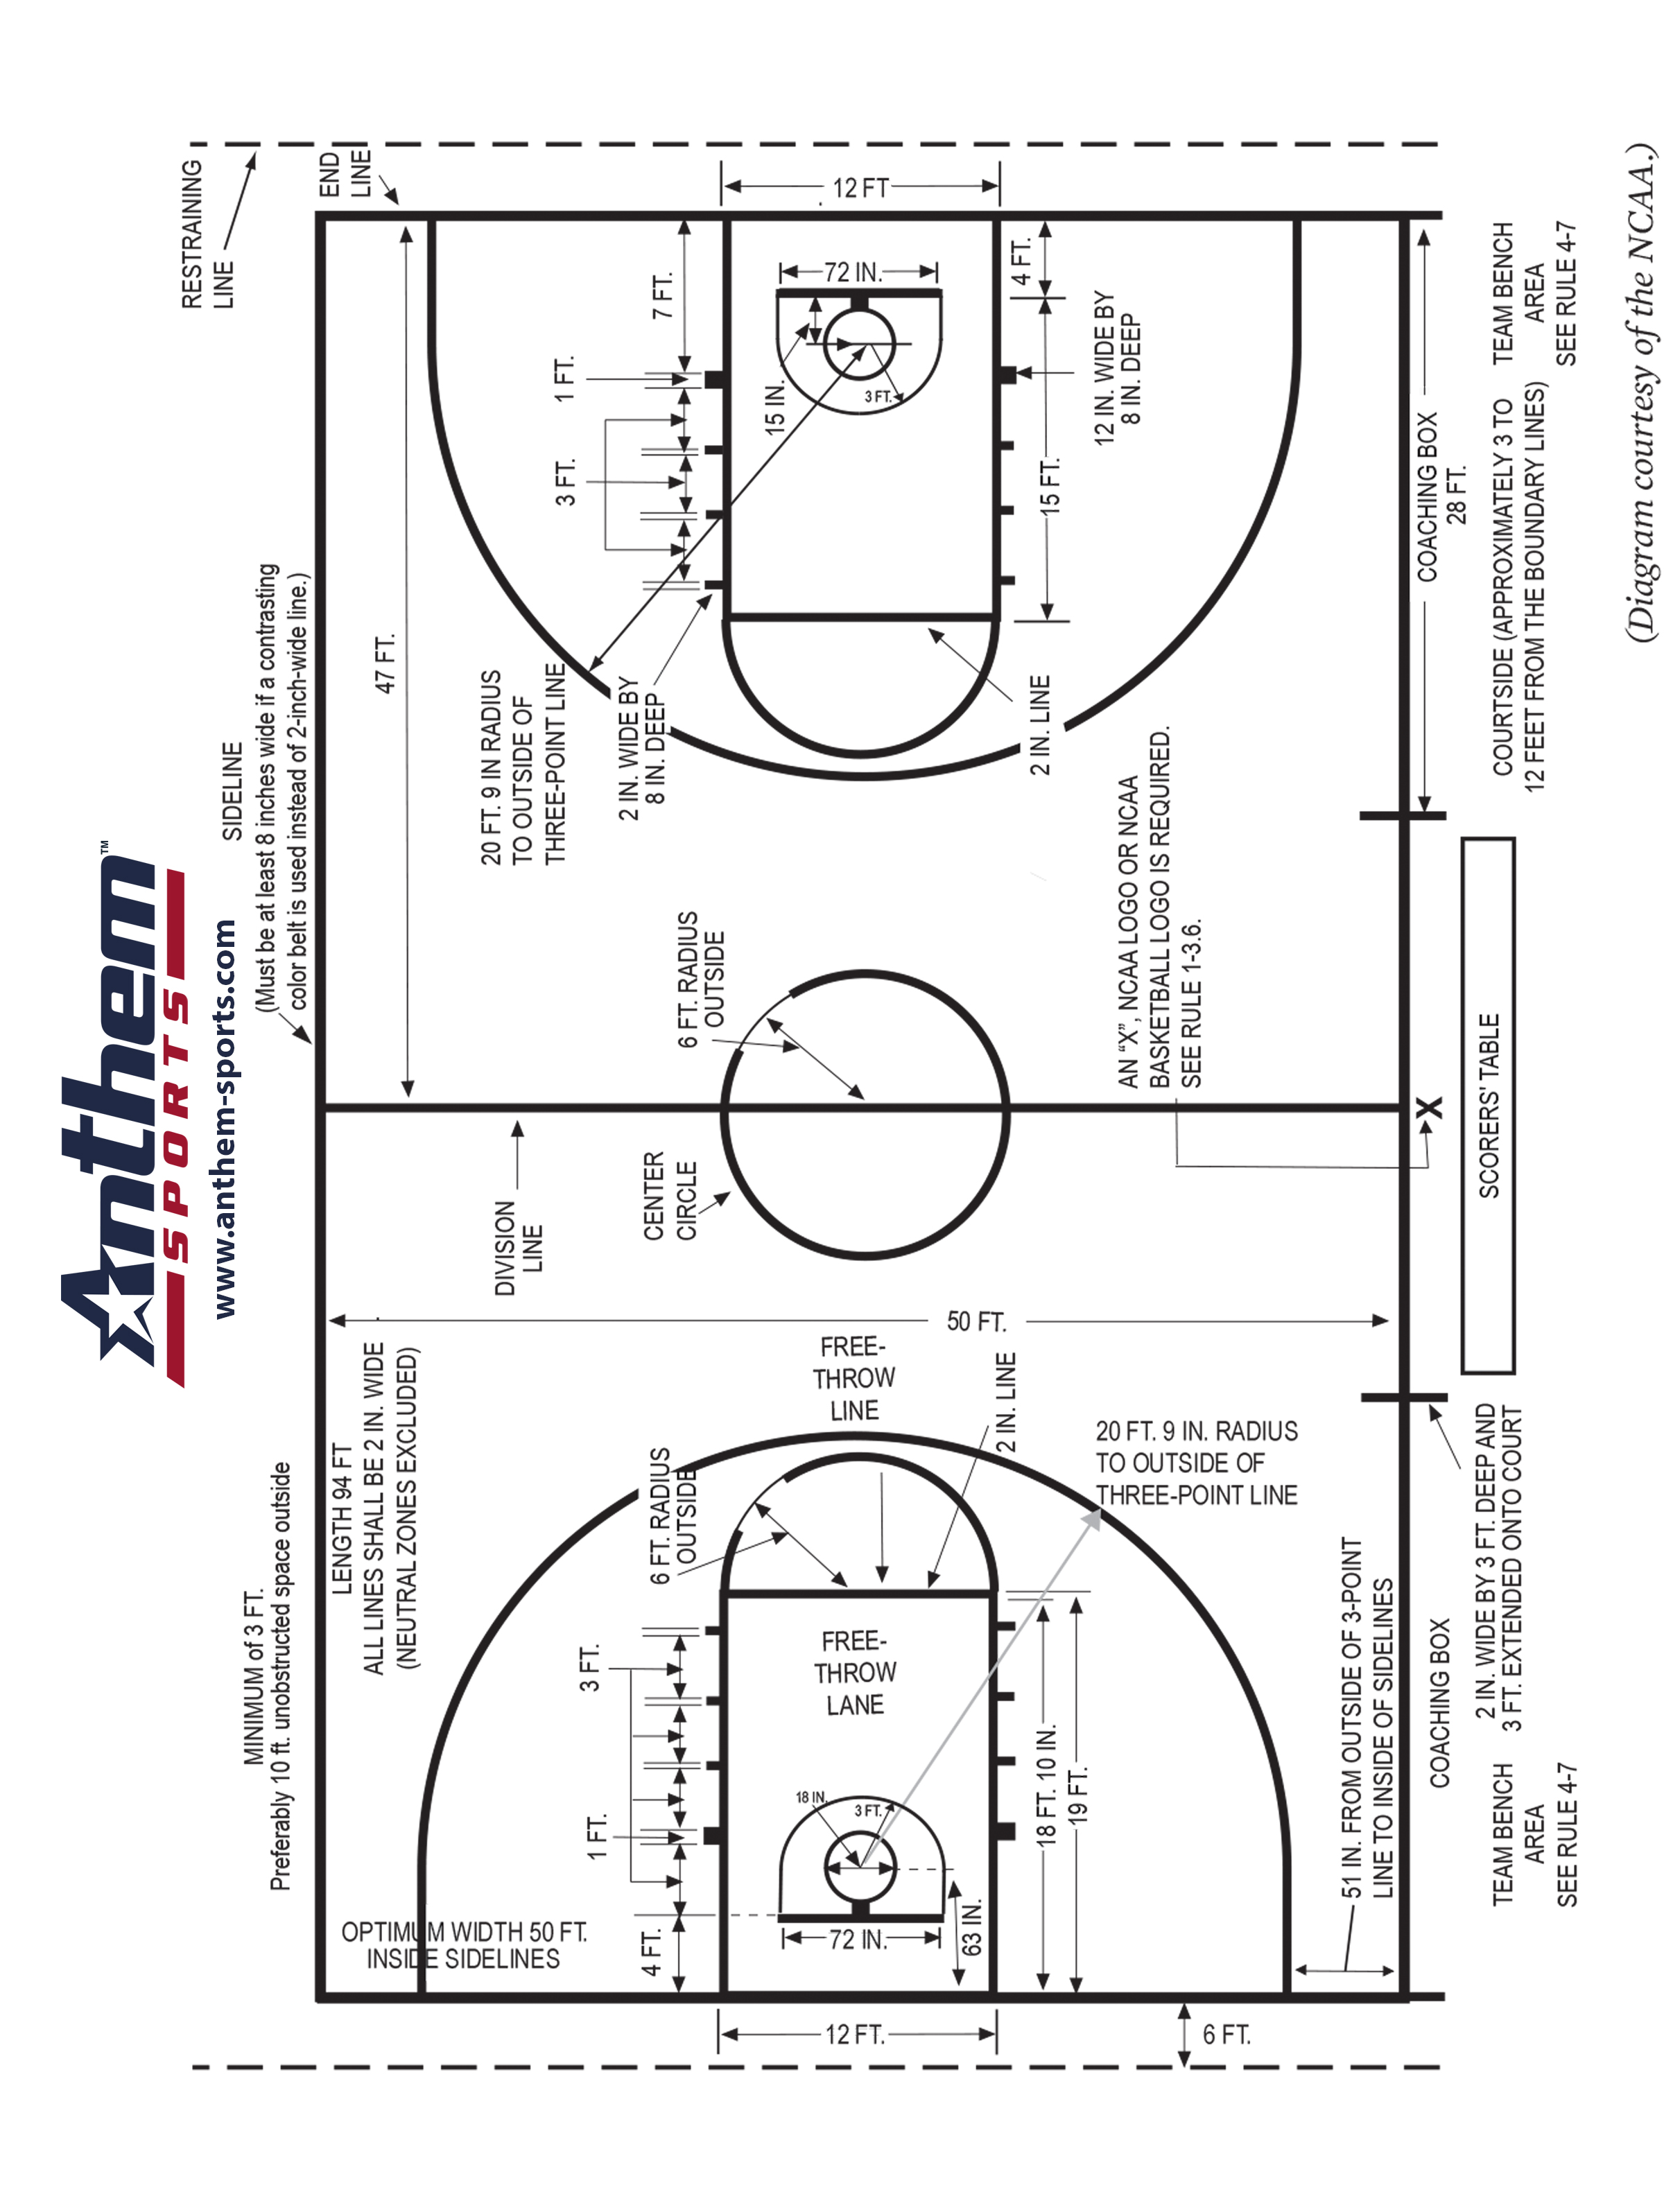 table shuffleboard dimensions diagram which represents anaphase i of meiosis ncaa basketball court